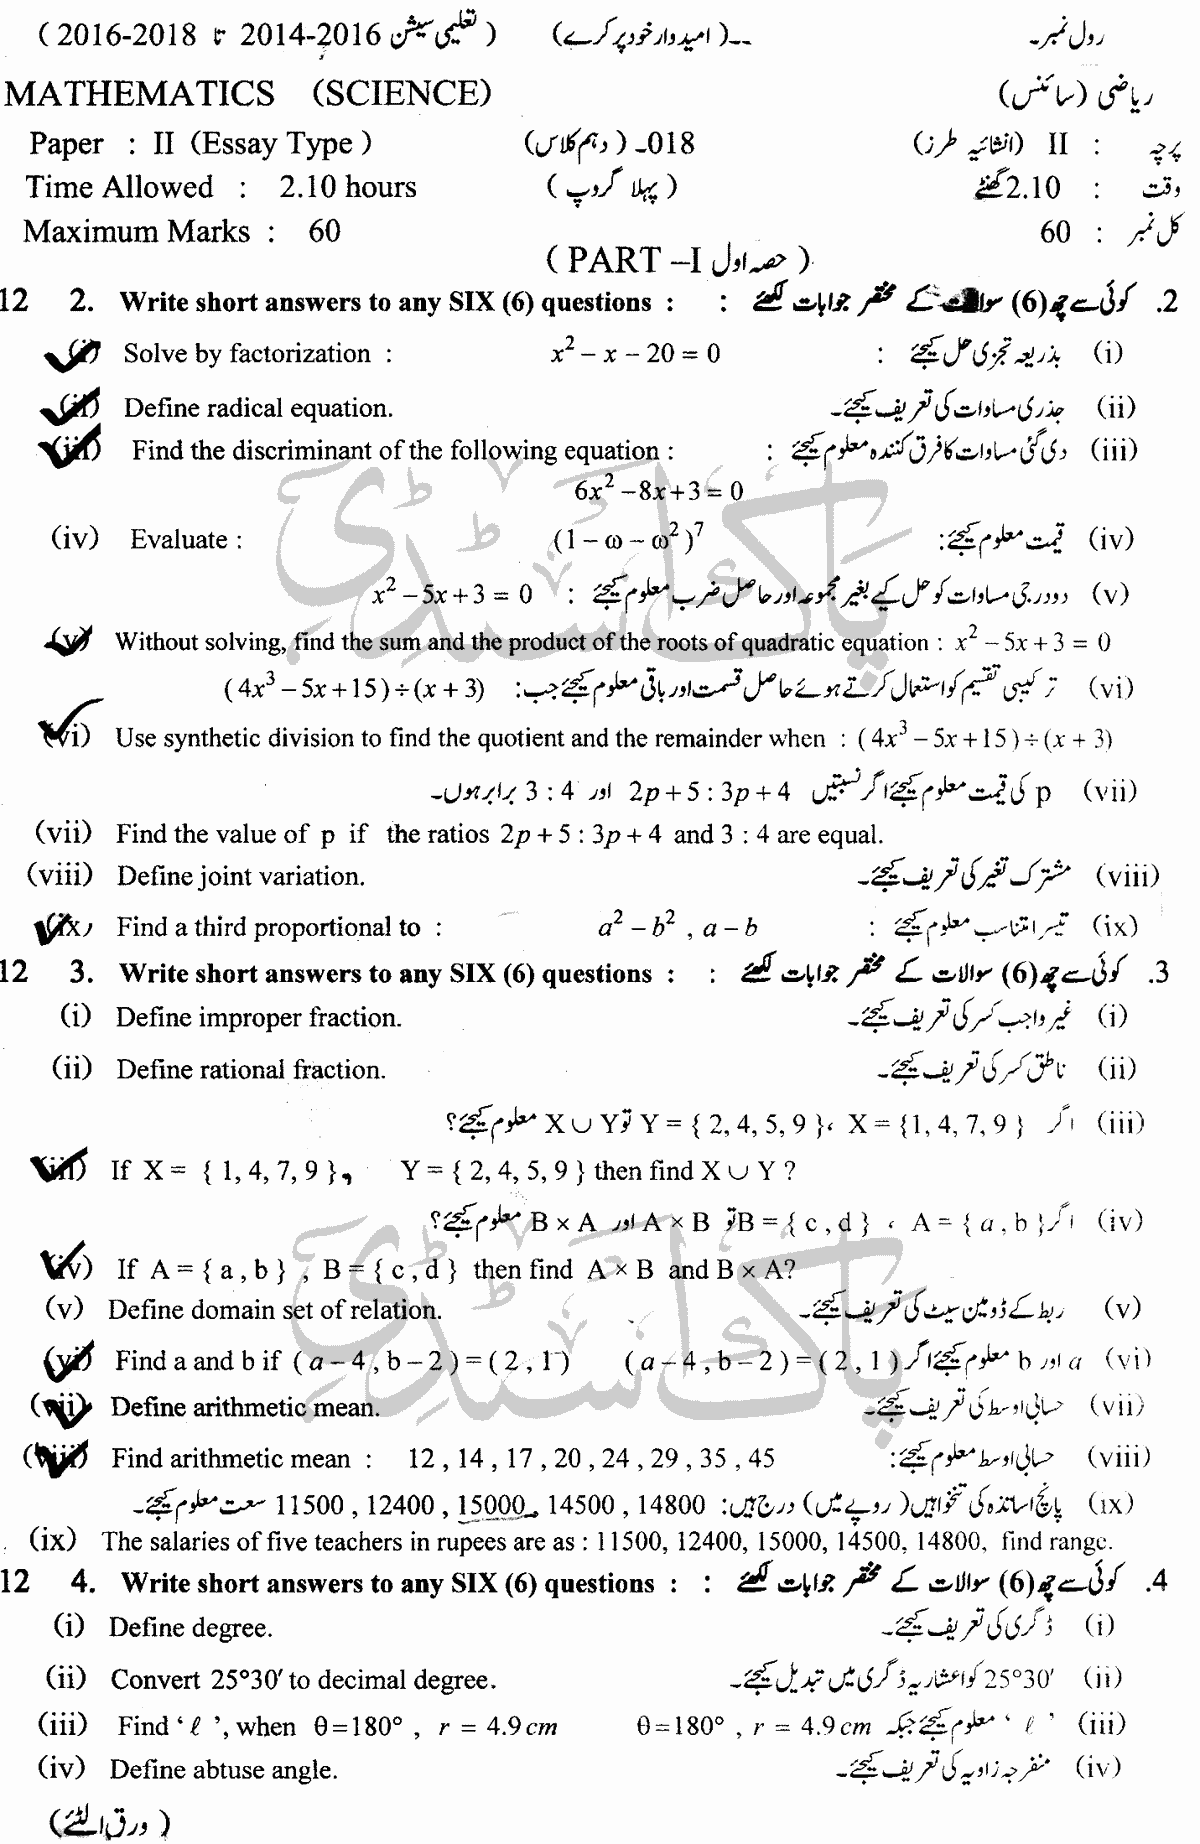 Pin By Gugulethu On Softboard Past Papers Radical Equations Exam Papers [ 1844 x 1200 Pixel ]